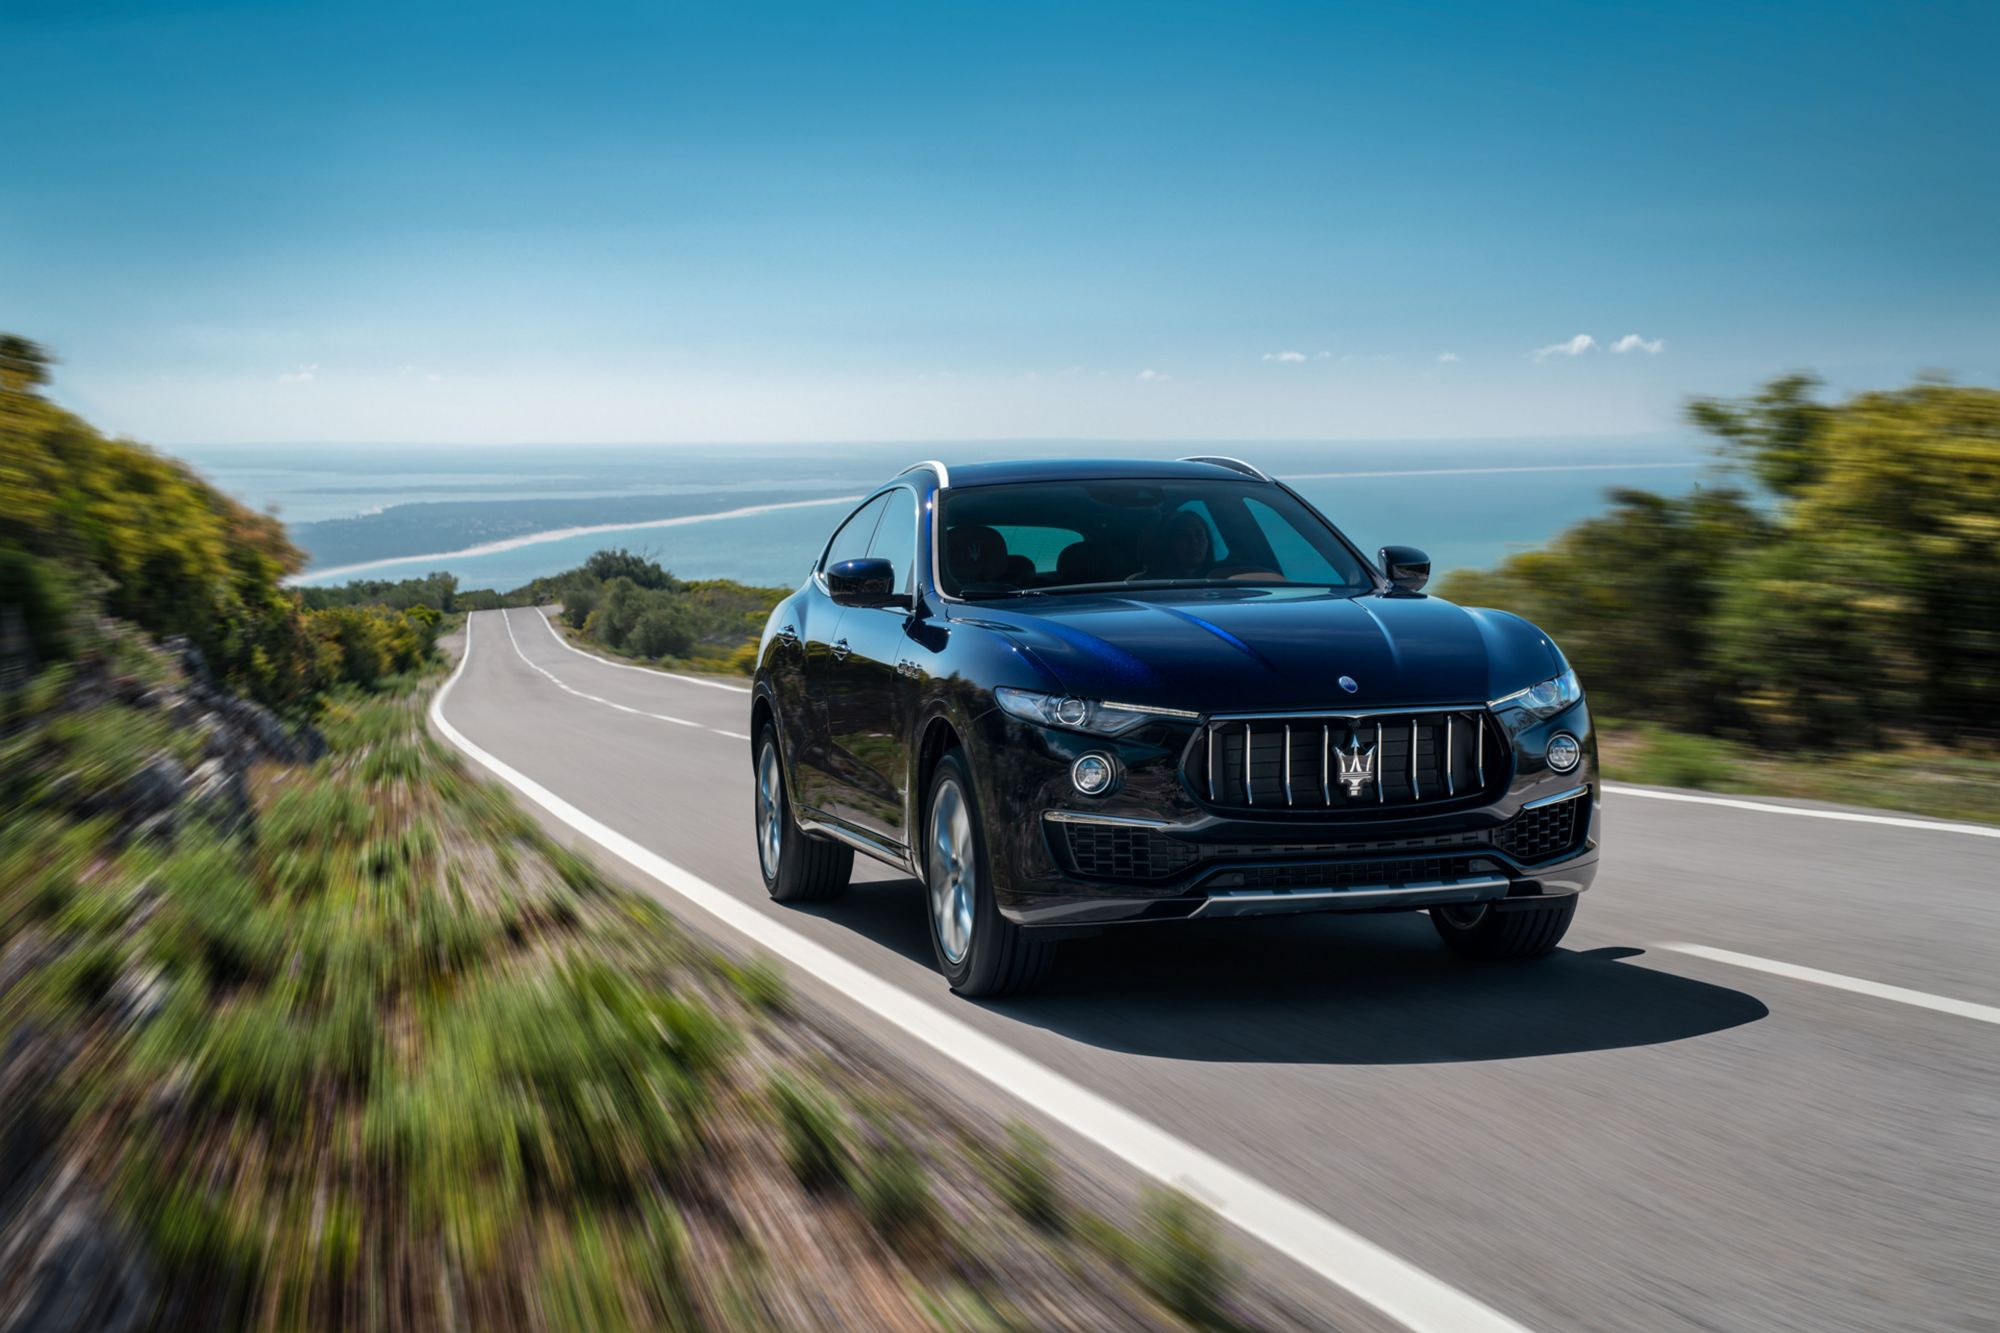 Maserati Philippines and Tatler Philippines Host An Exclusive Virtual Event Bringing Together Lovers of Travel, Wine, and Cars